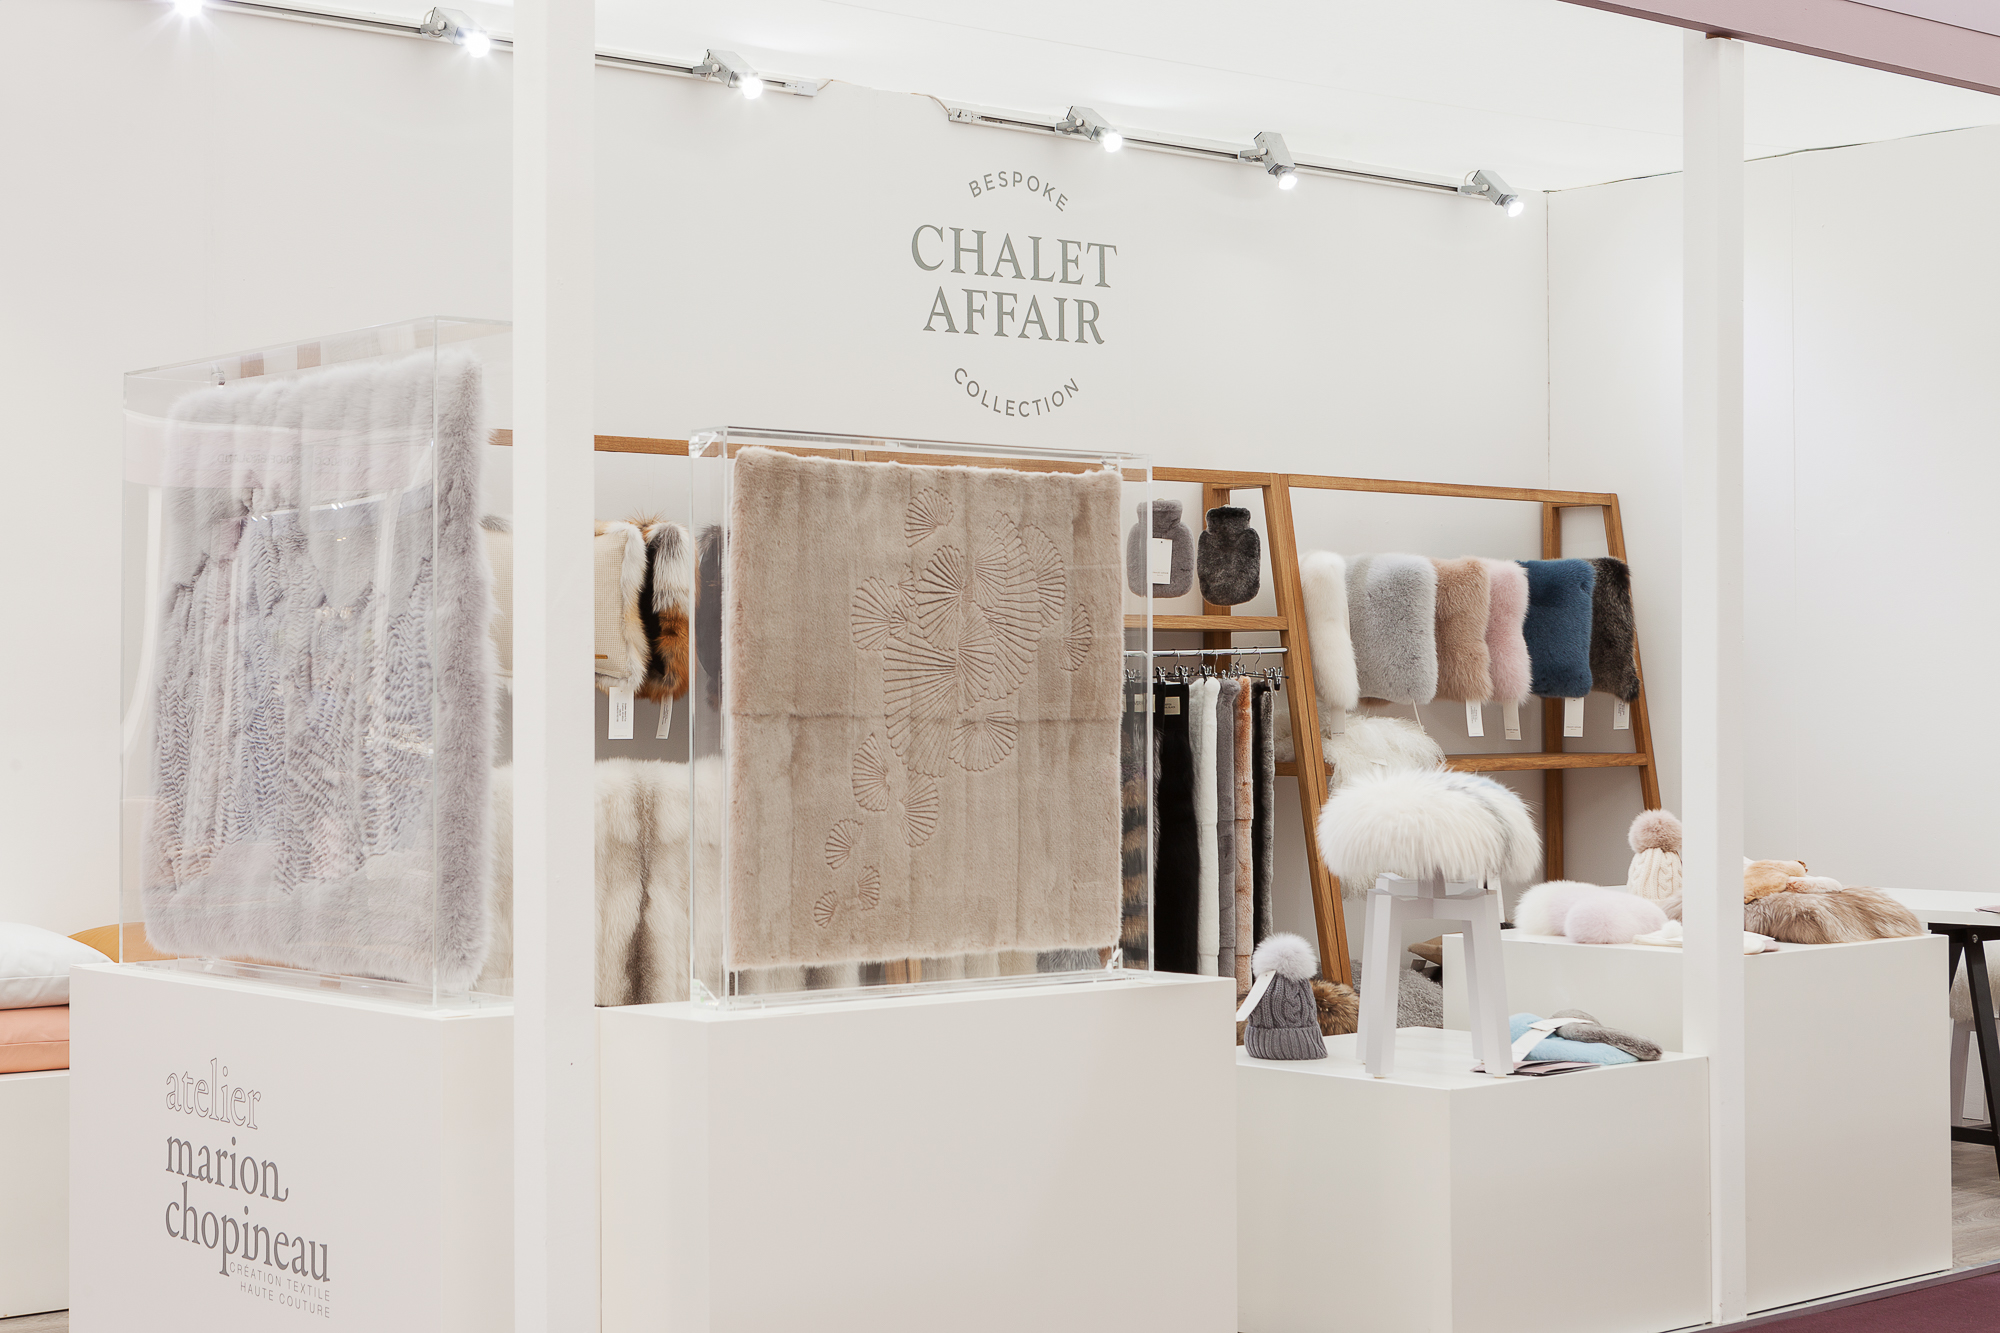 Chalet affair | Decorex 2017